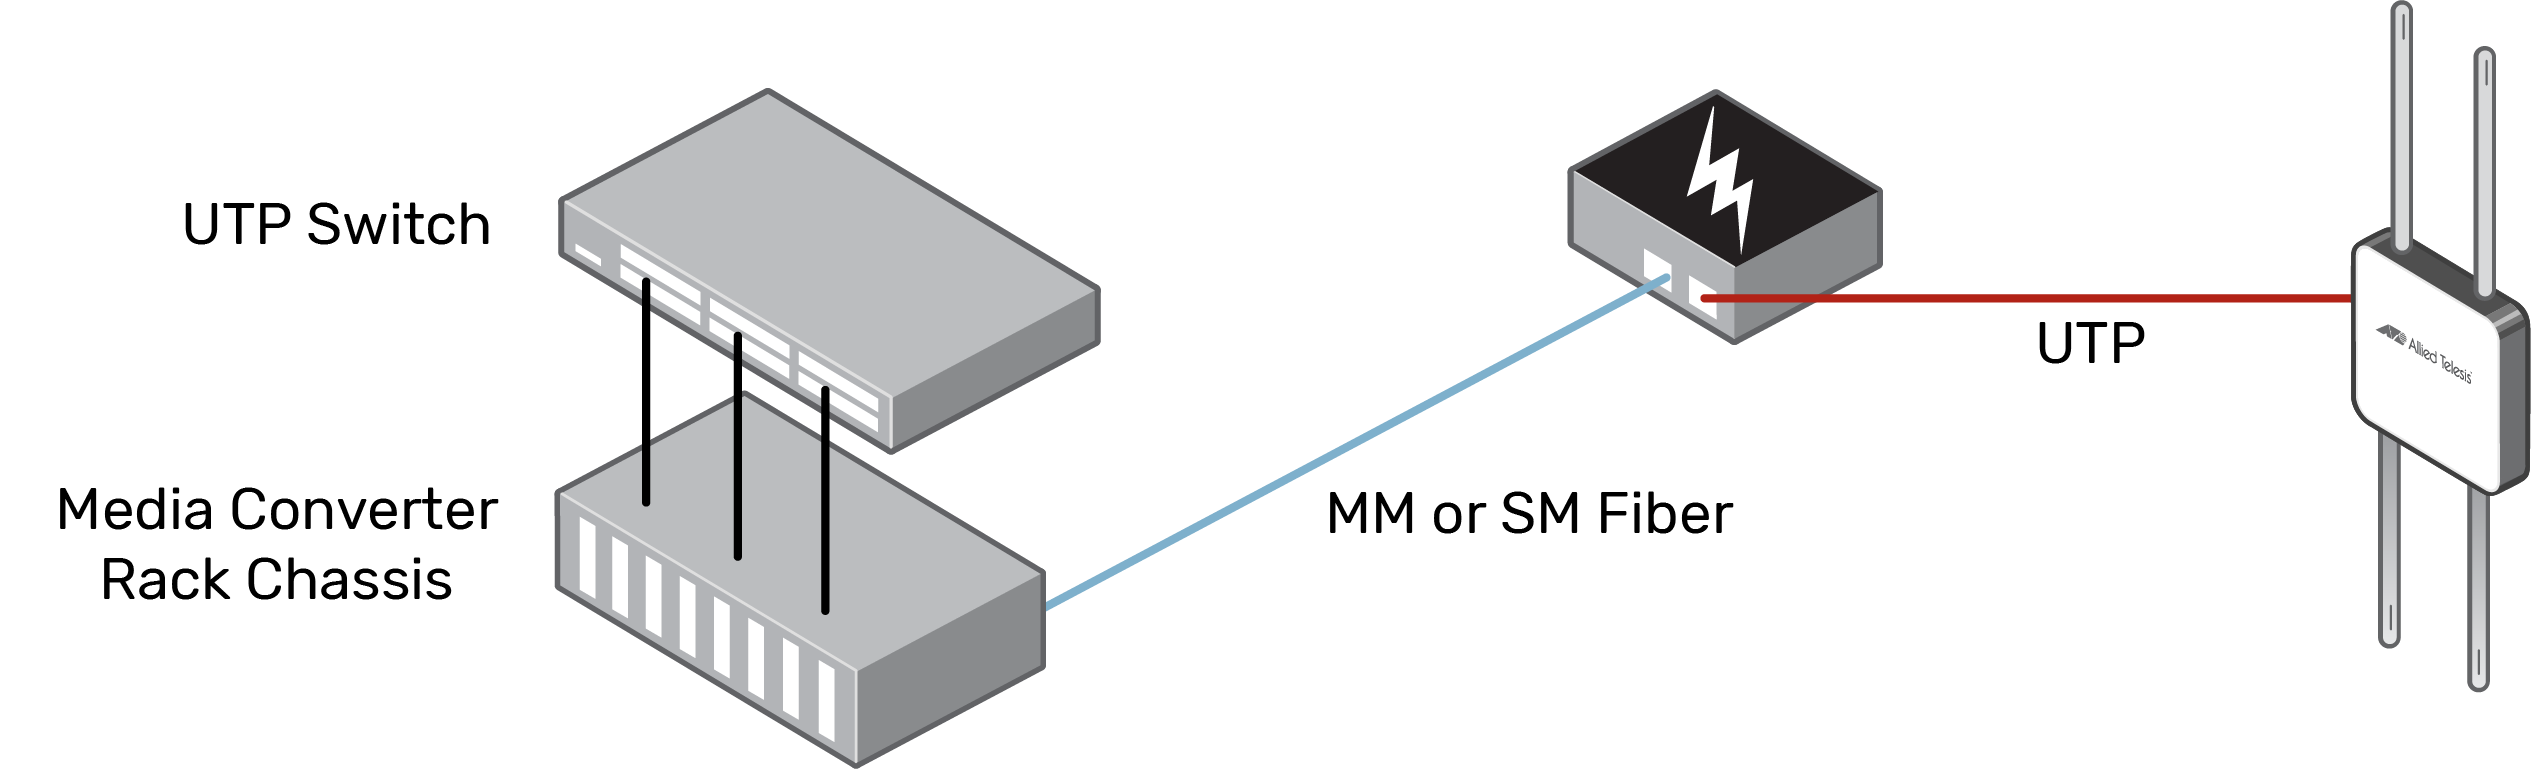 Diagram showing the set up from a switch through a media converter to a wireless device